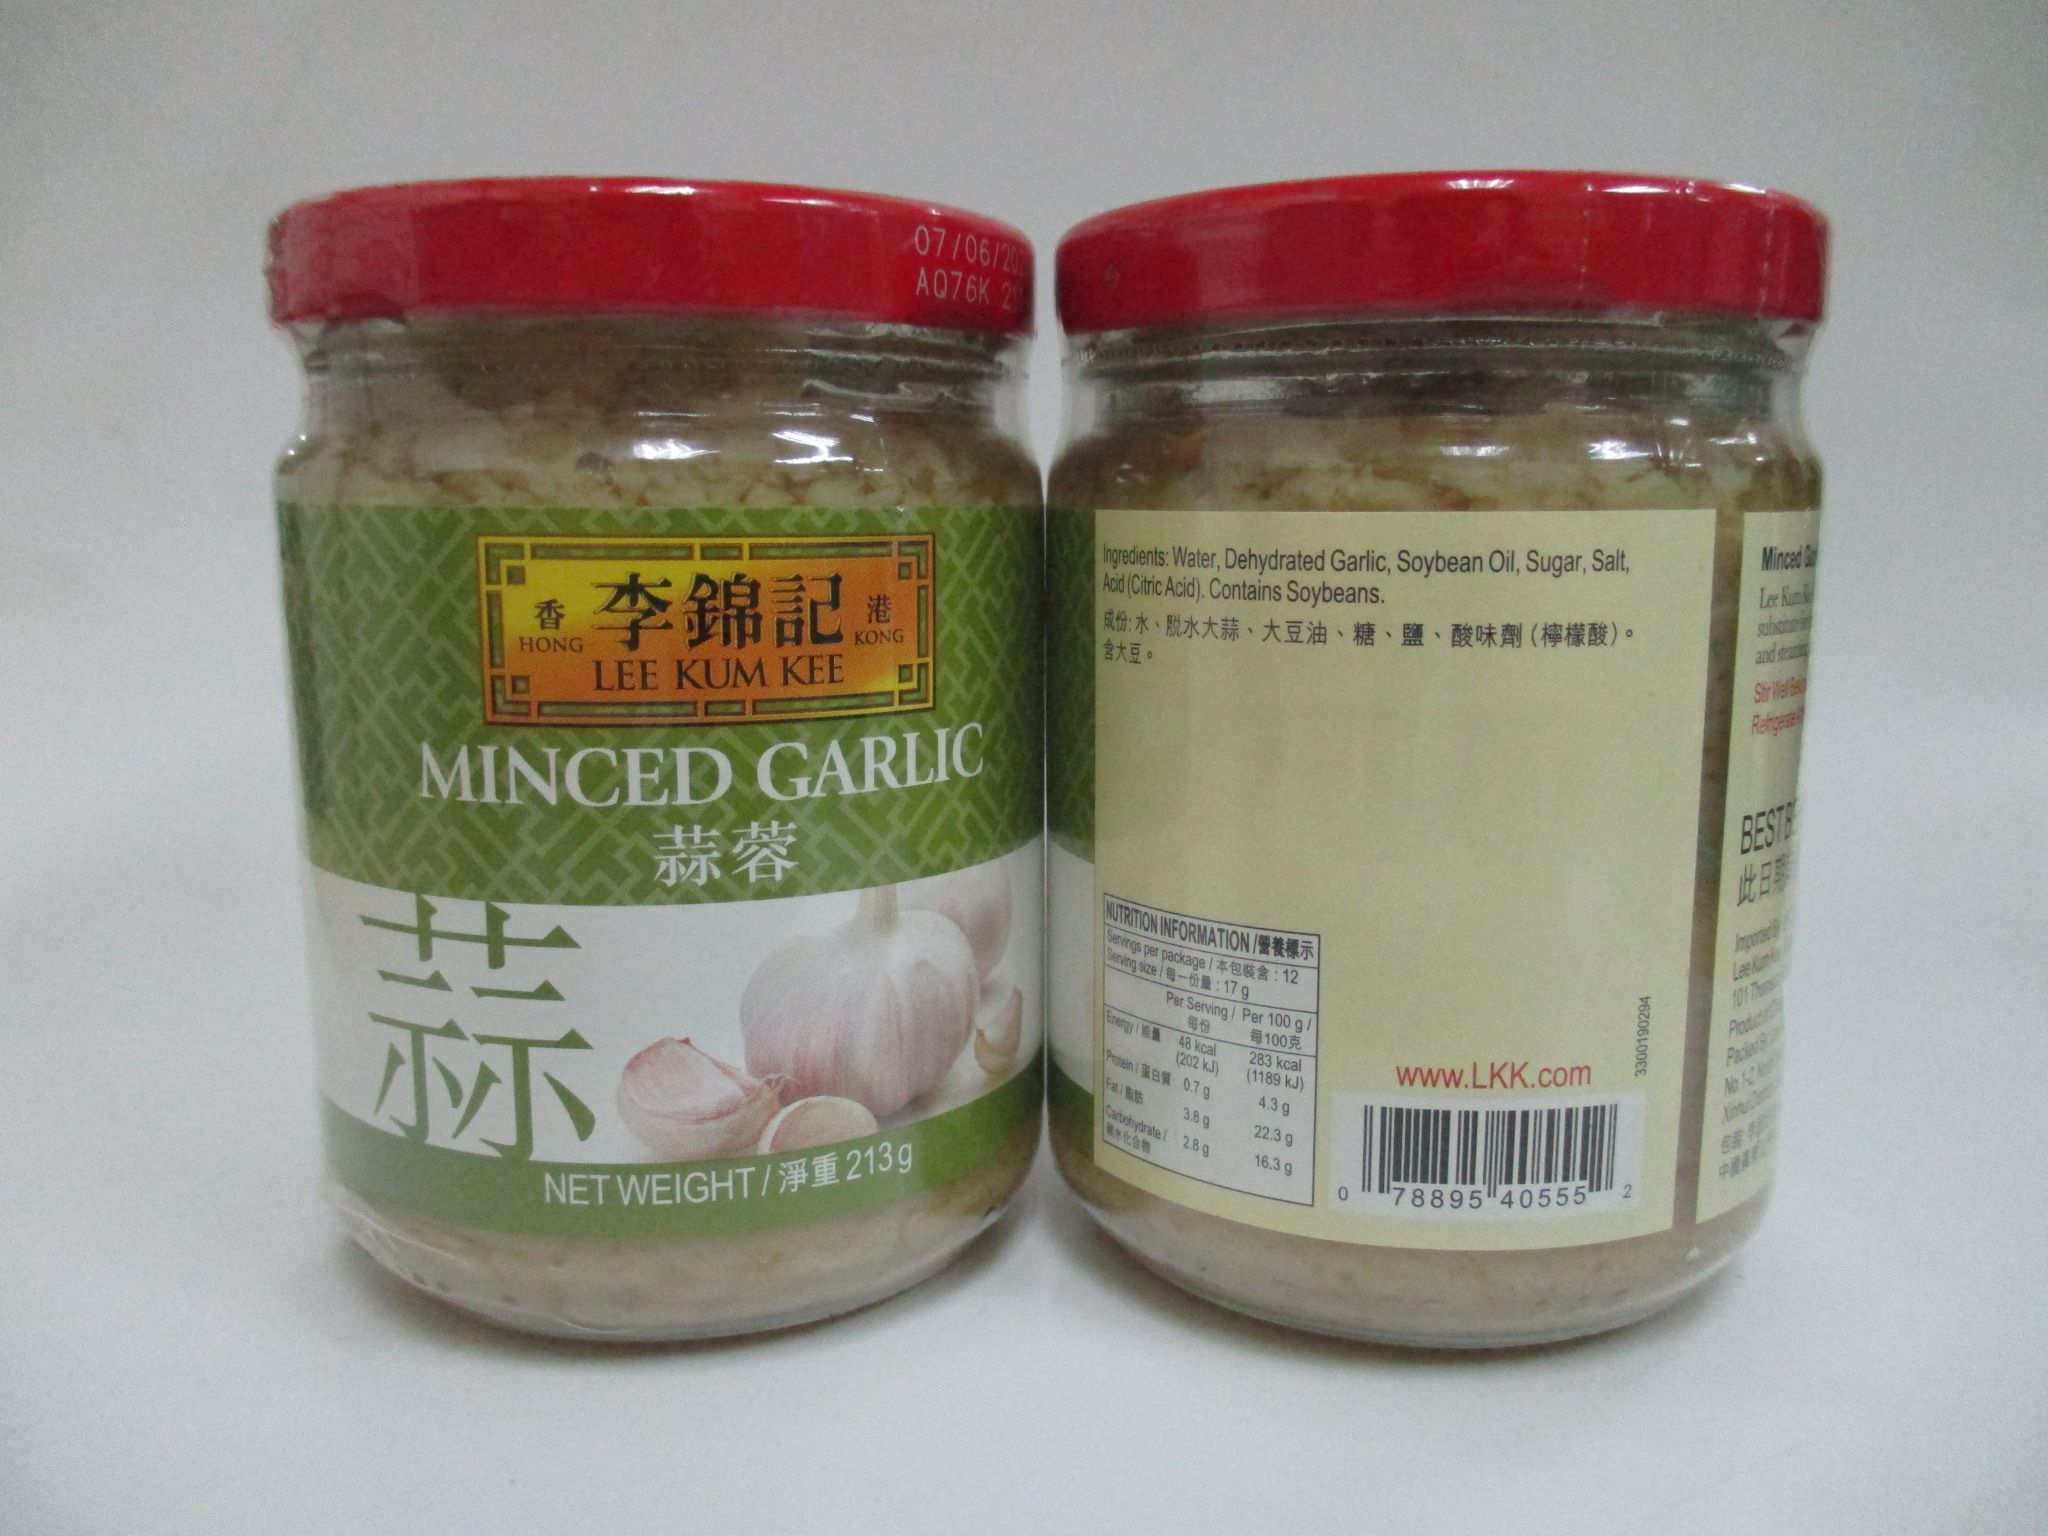 LKK Minced Garlic (12 x 213g) NEW